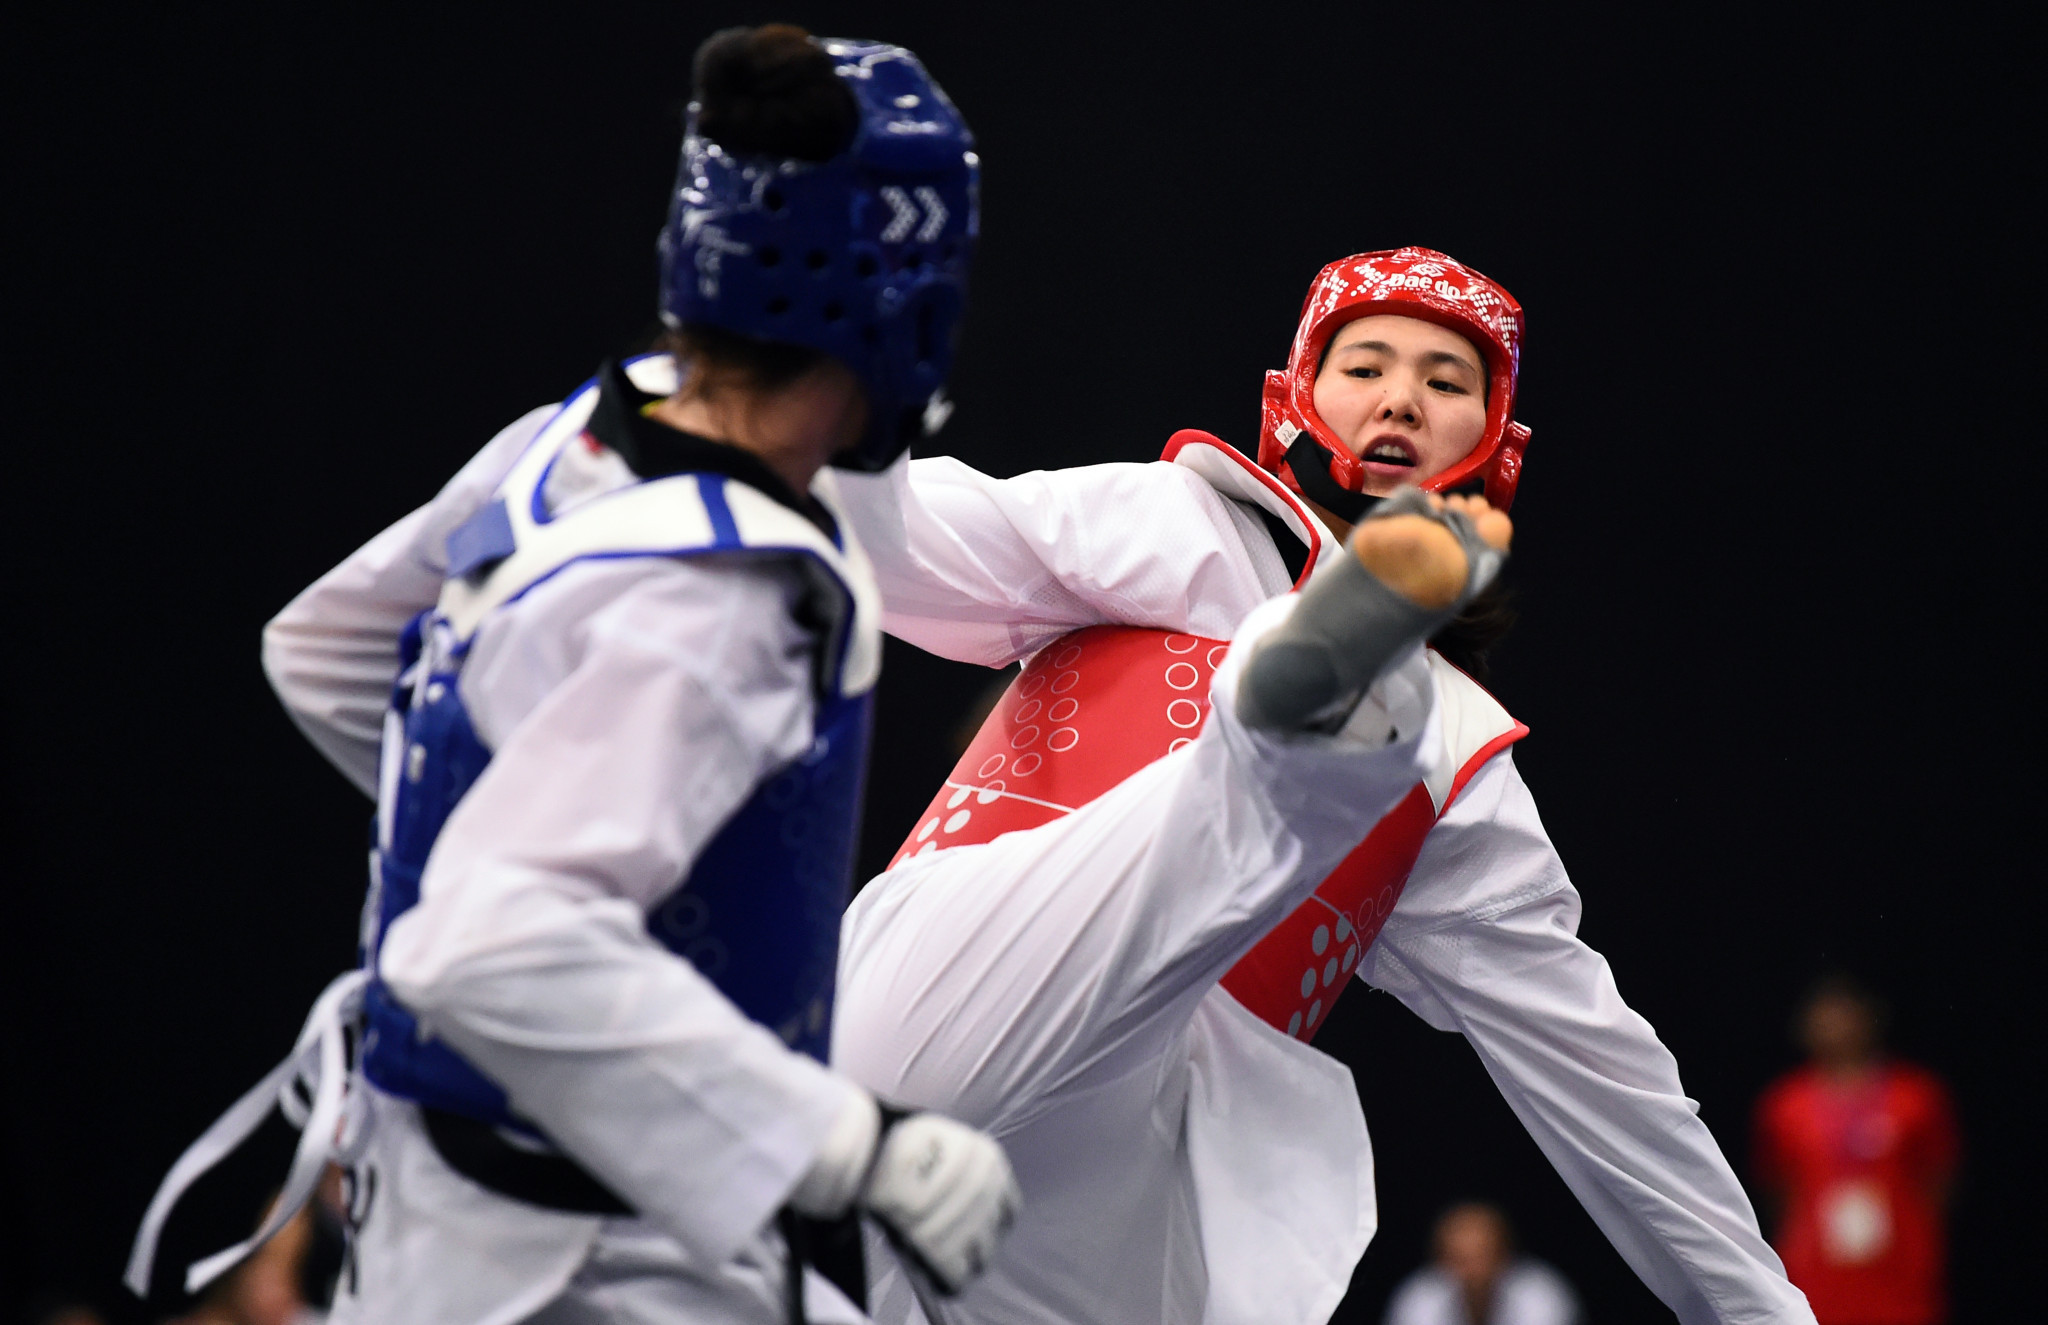 Hosts China win seven out of eight gold medals at World Taekwondo Grand Slam Champions Series qualifier